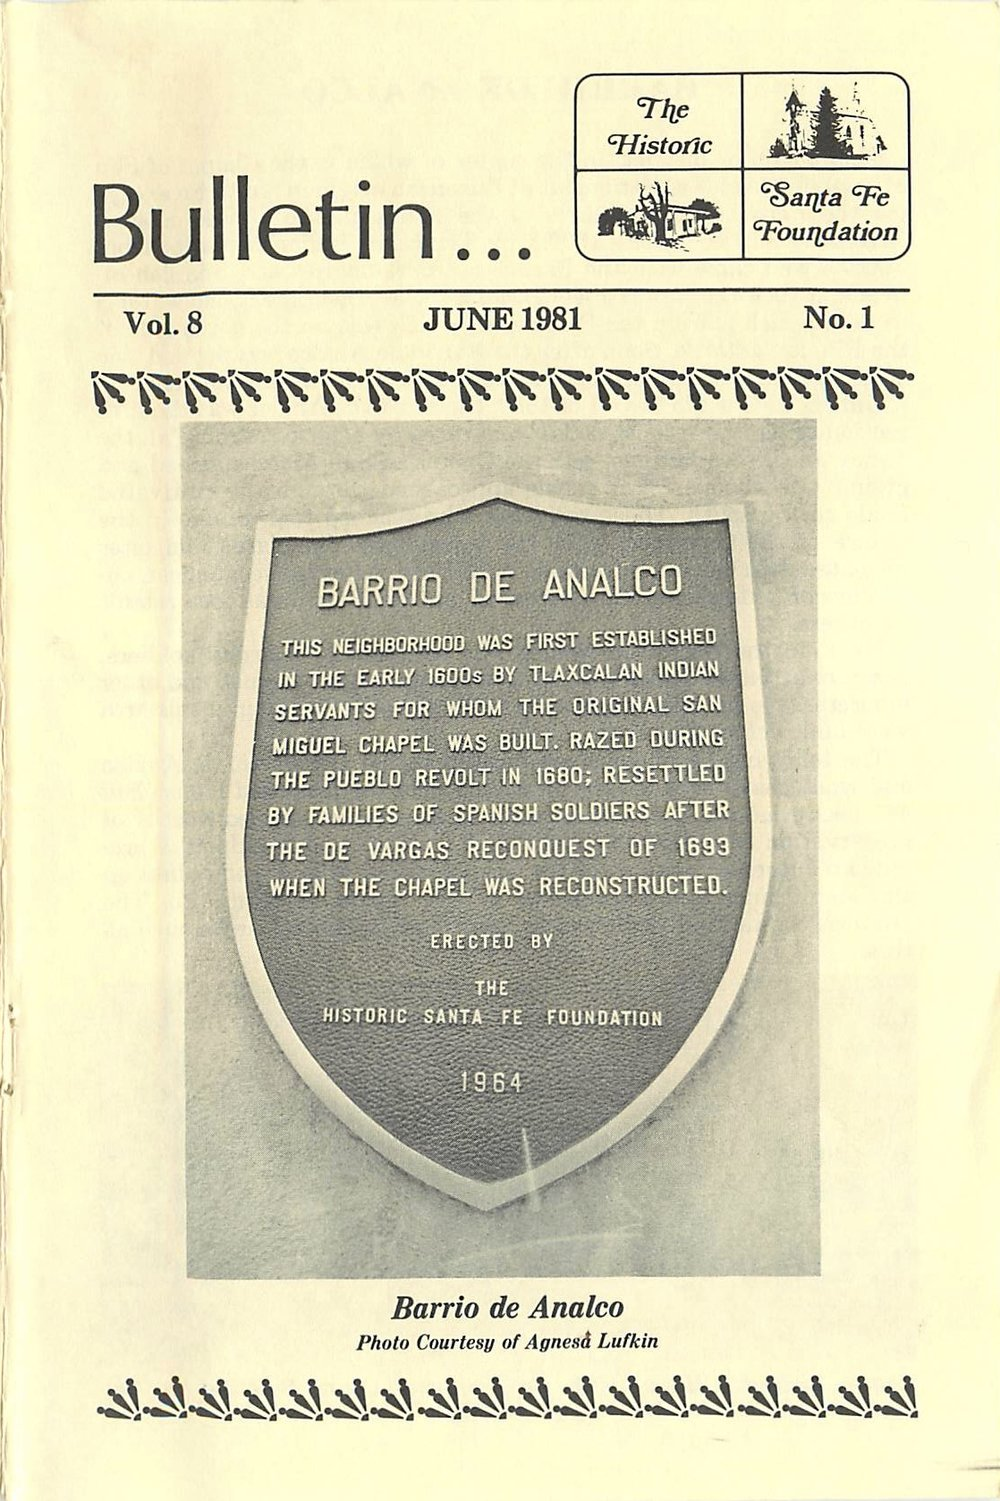 1981 HSFF Bulletin Vol.8 No.1 Cover